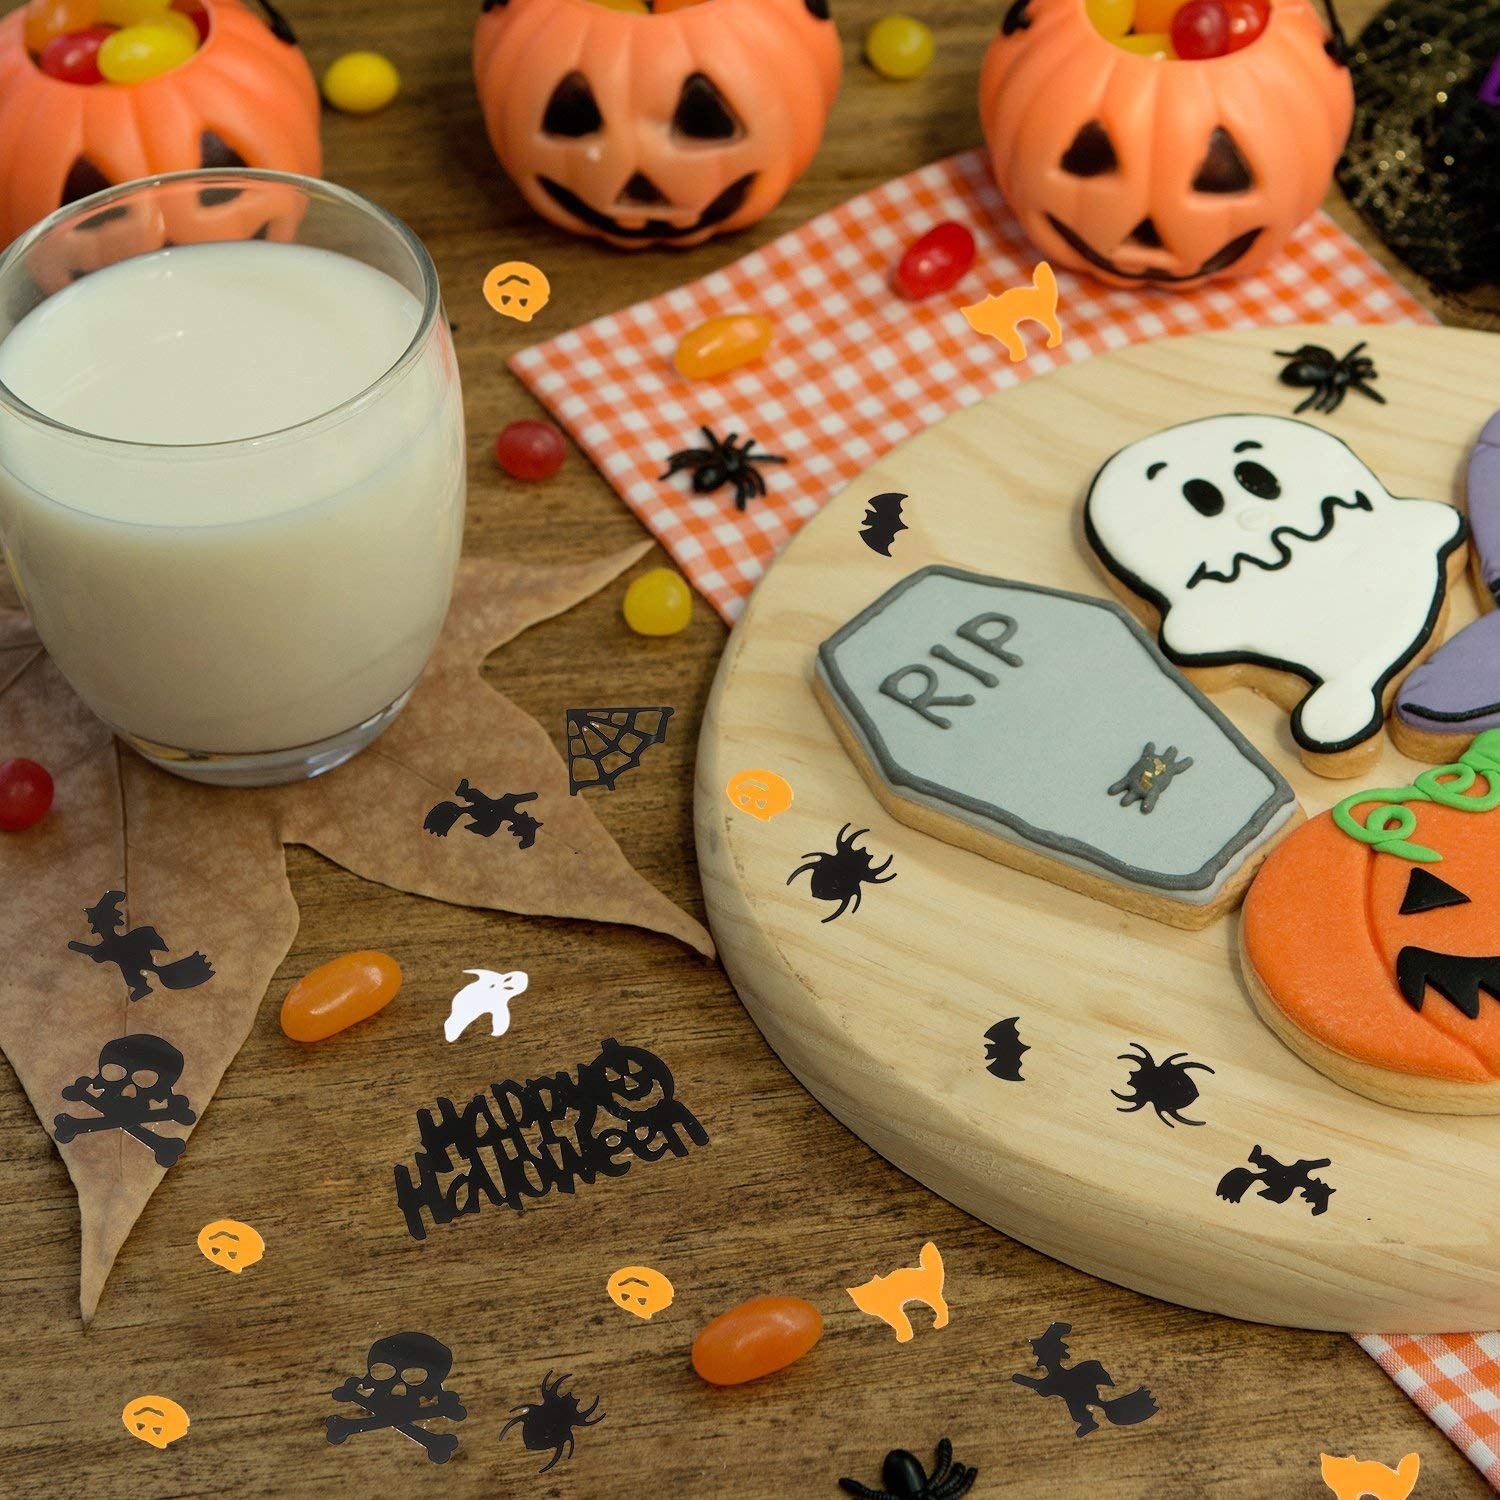 Aneco 160g Happy Halloween Confetti Spider Witch Pumpkin Cat Ghost Bat Skeleton Sprinkles Table Confett Halloween Night Party Decoration